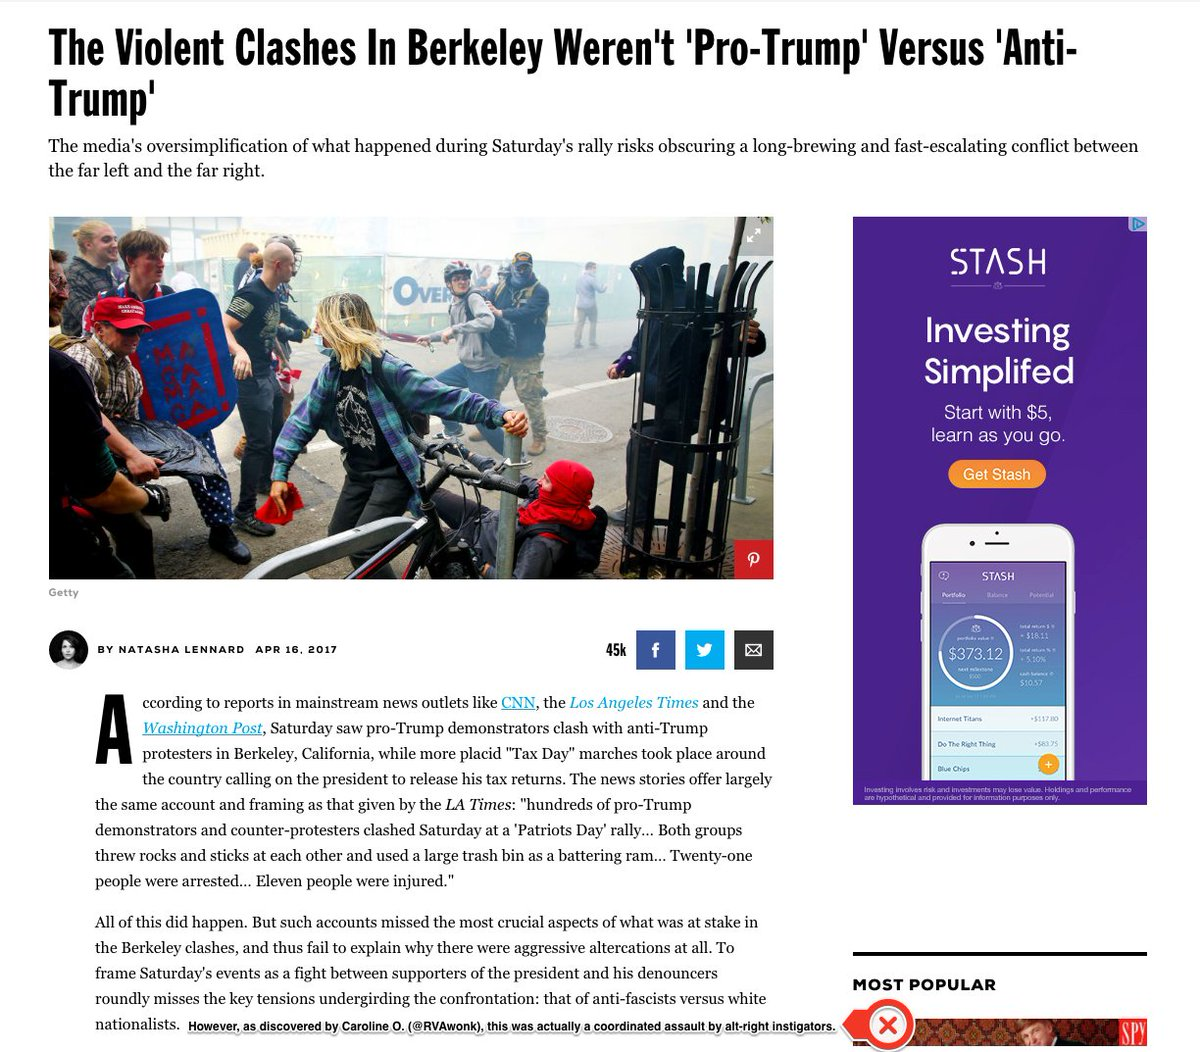 Good coverage of #Berkeley but I fixed it for them - https://t.co/MMQr7y1NUc - @RVAwonk https://t.co/u8ohhD2AzH